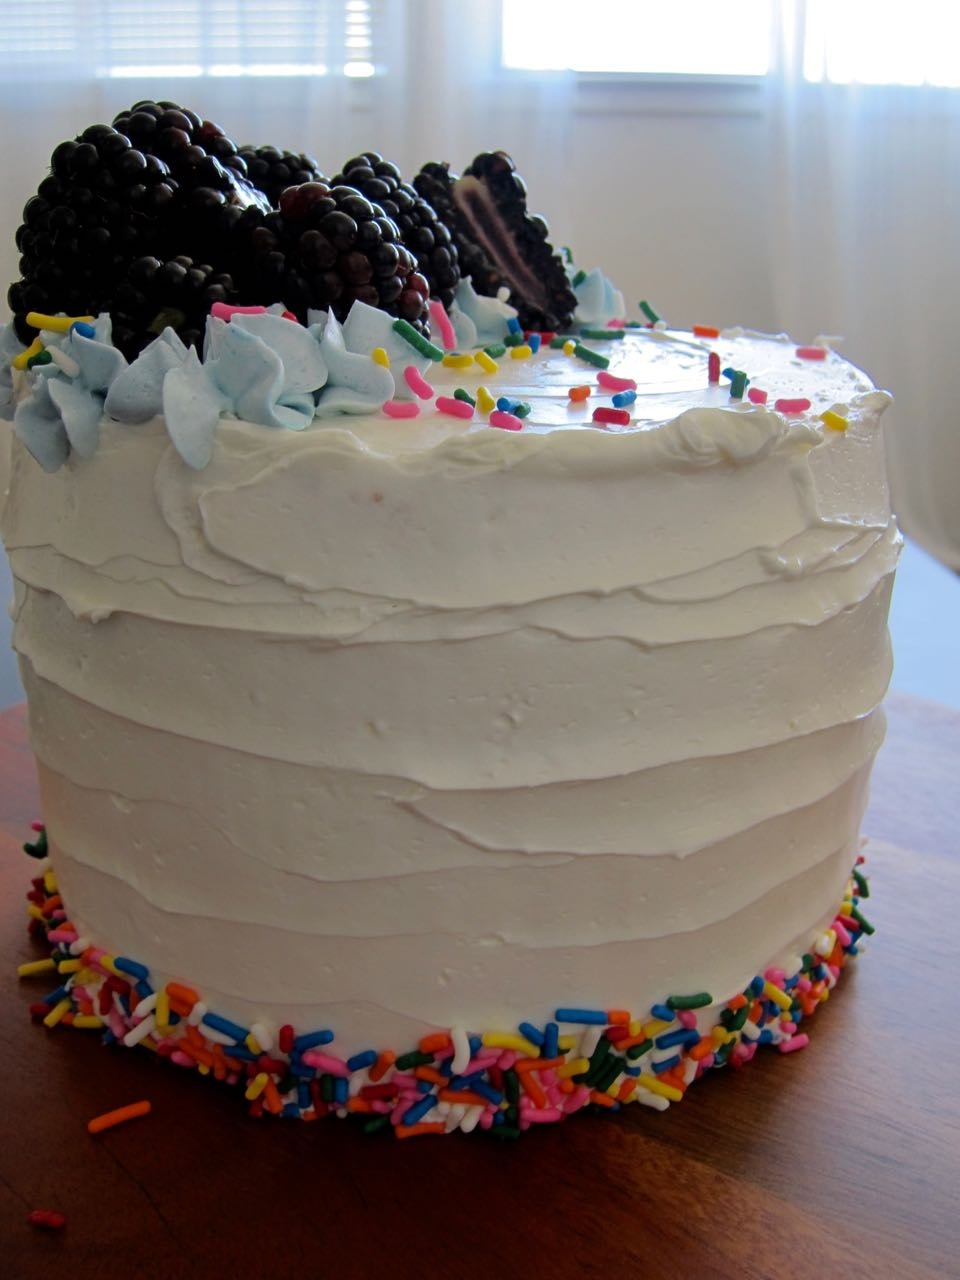 blackberry and funfetti cake.jpg